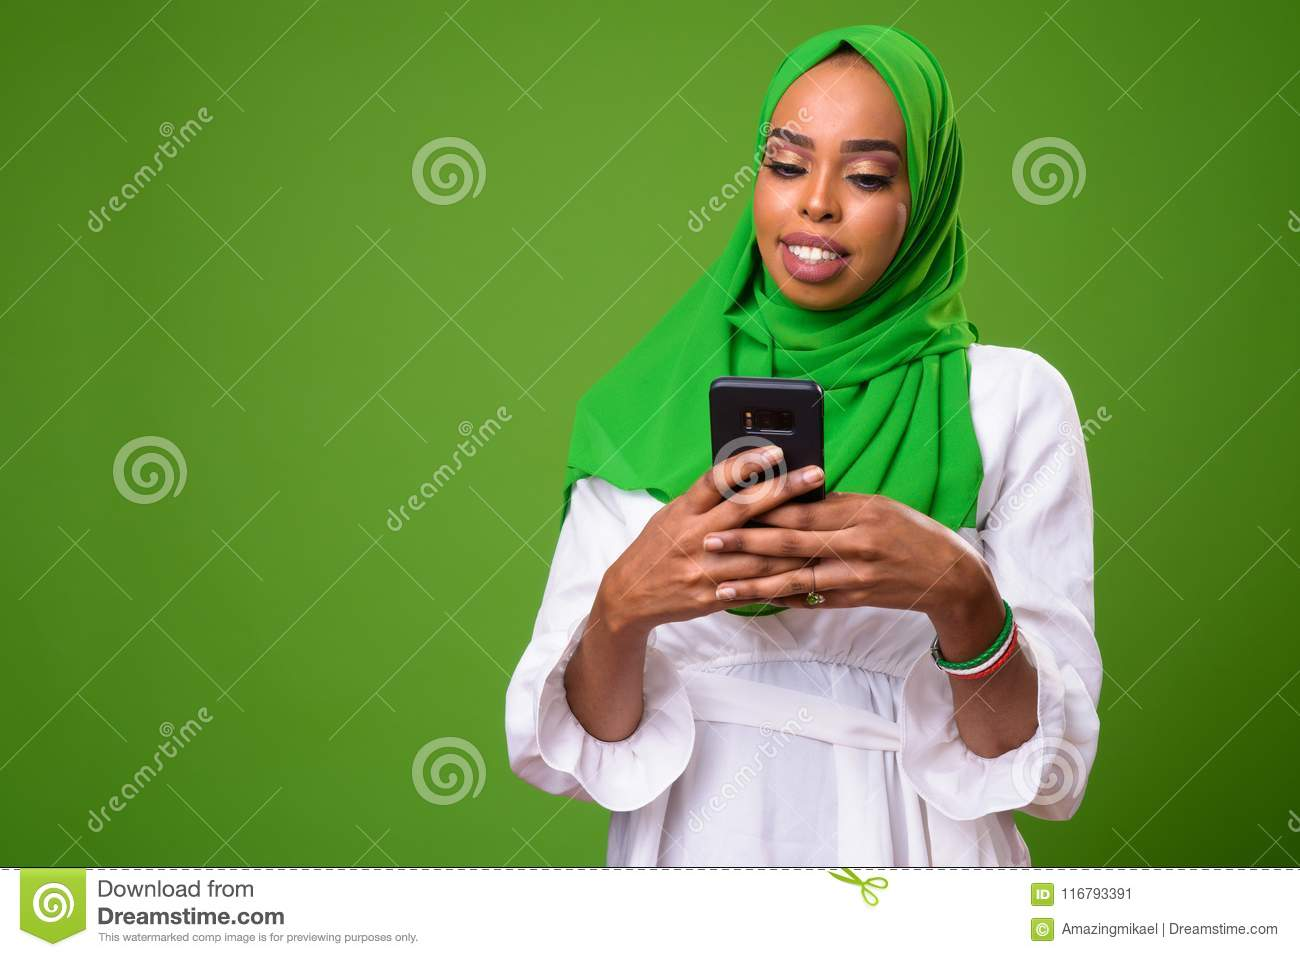 Young African Muslim Woman Against Chroma Key With Green